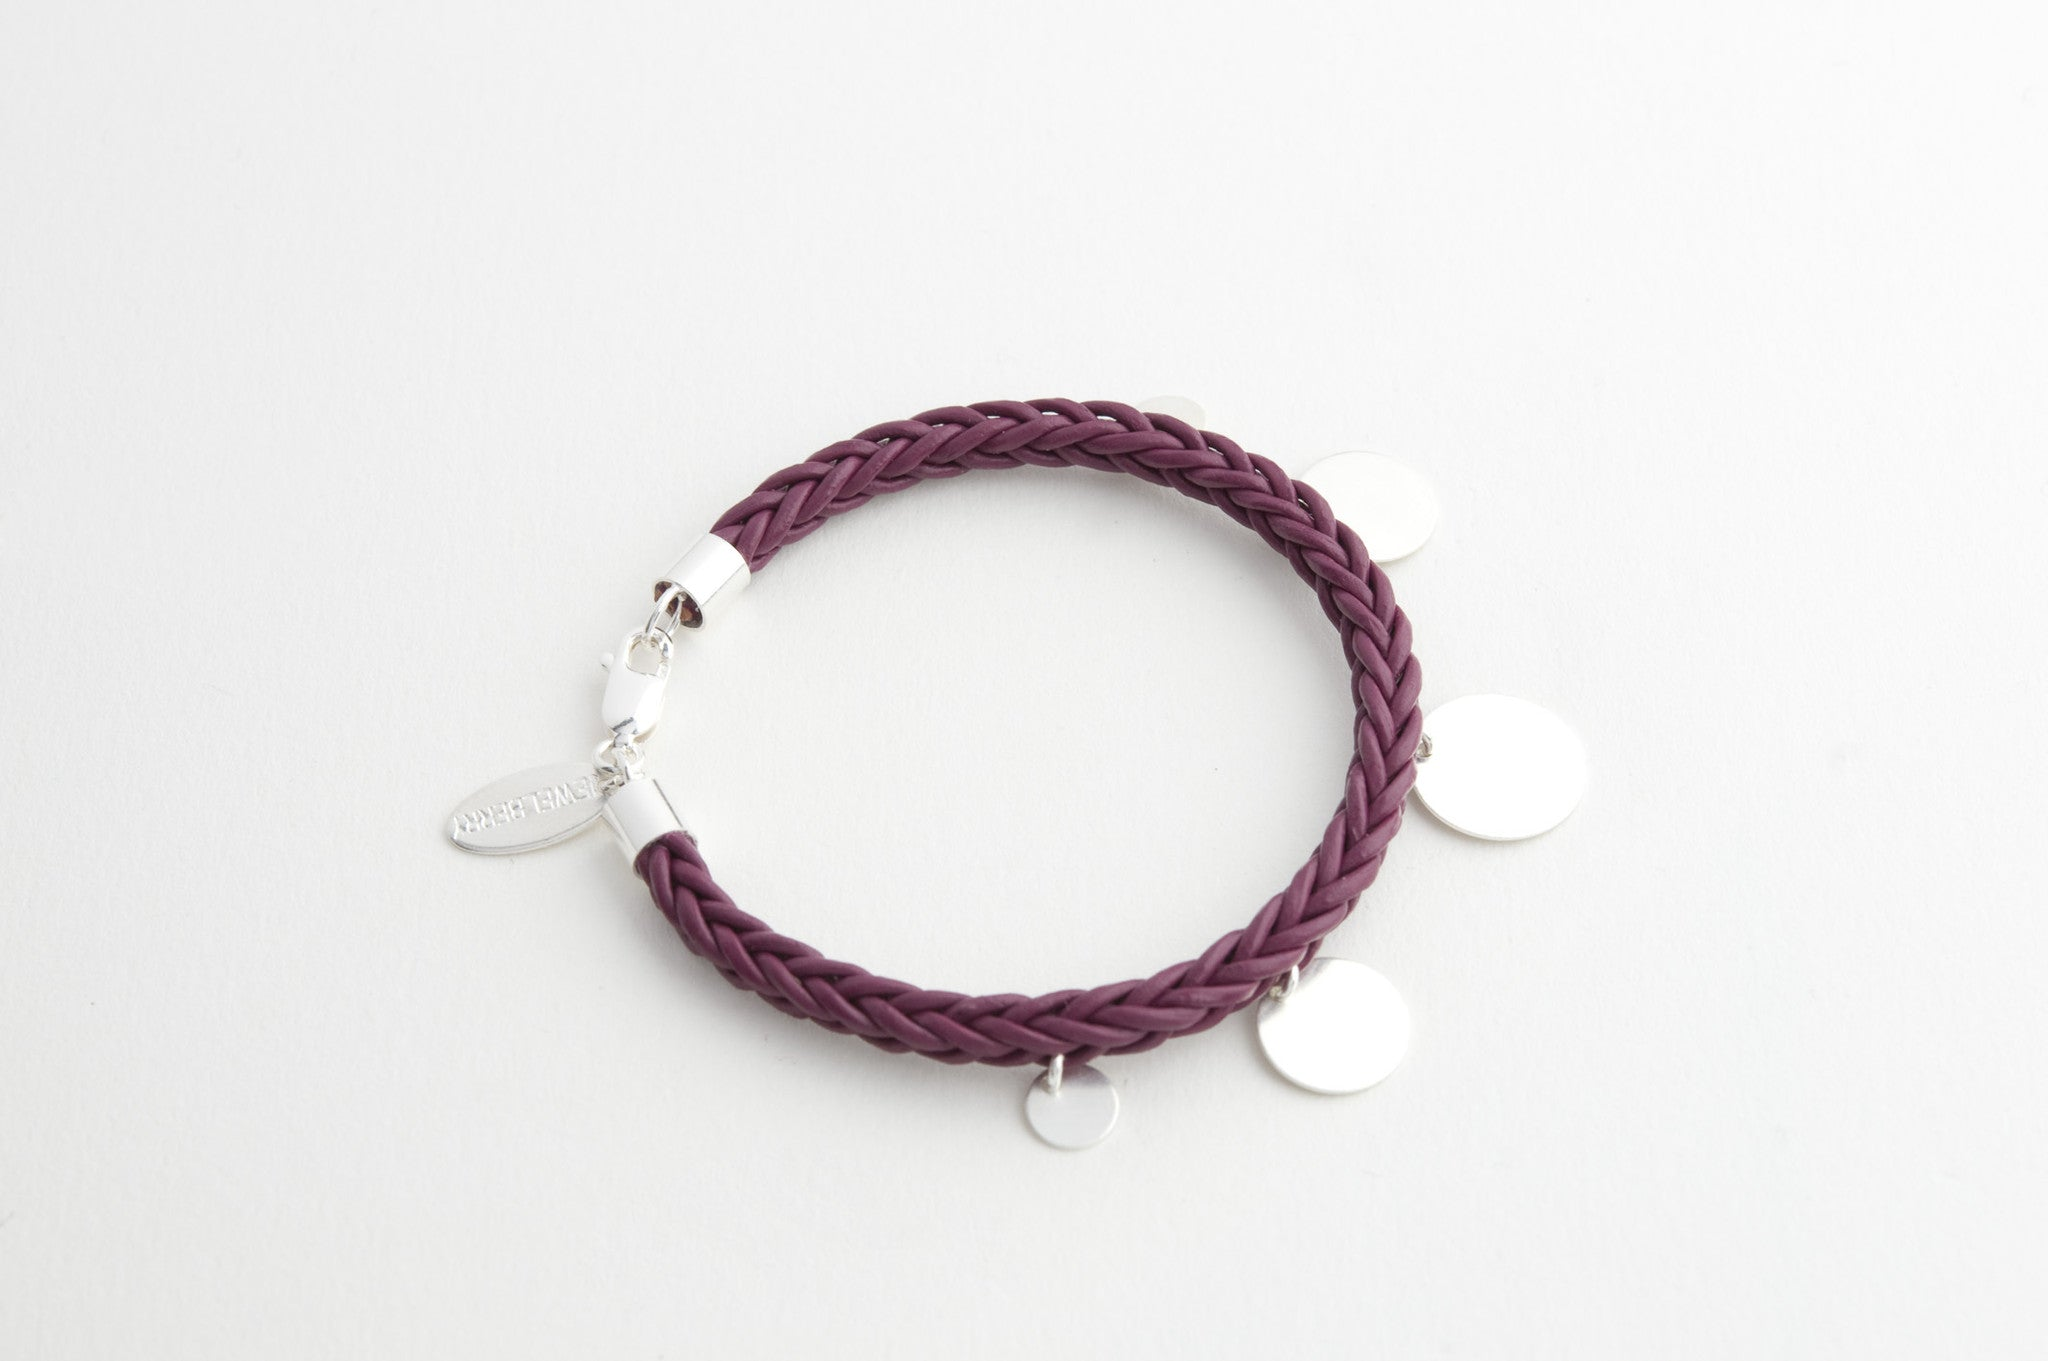 Armband LEATHER BRAID versilbert